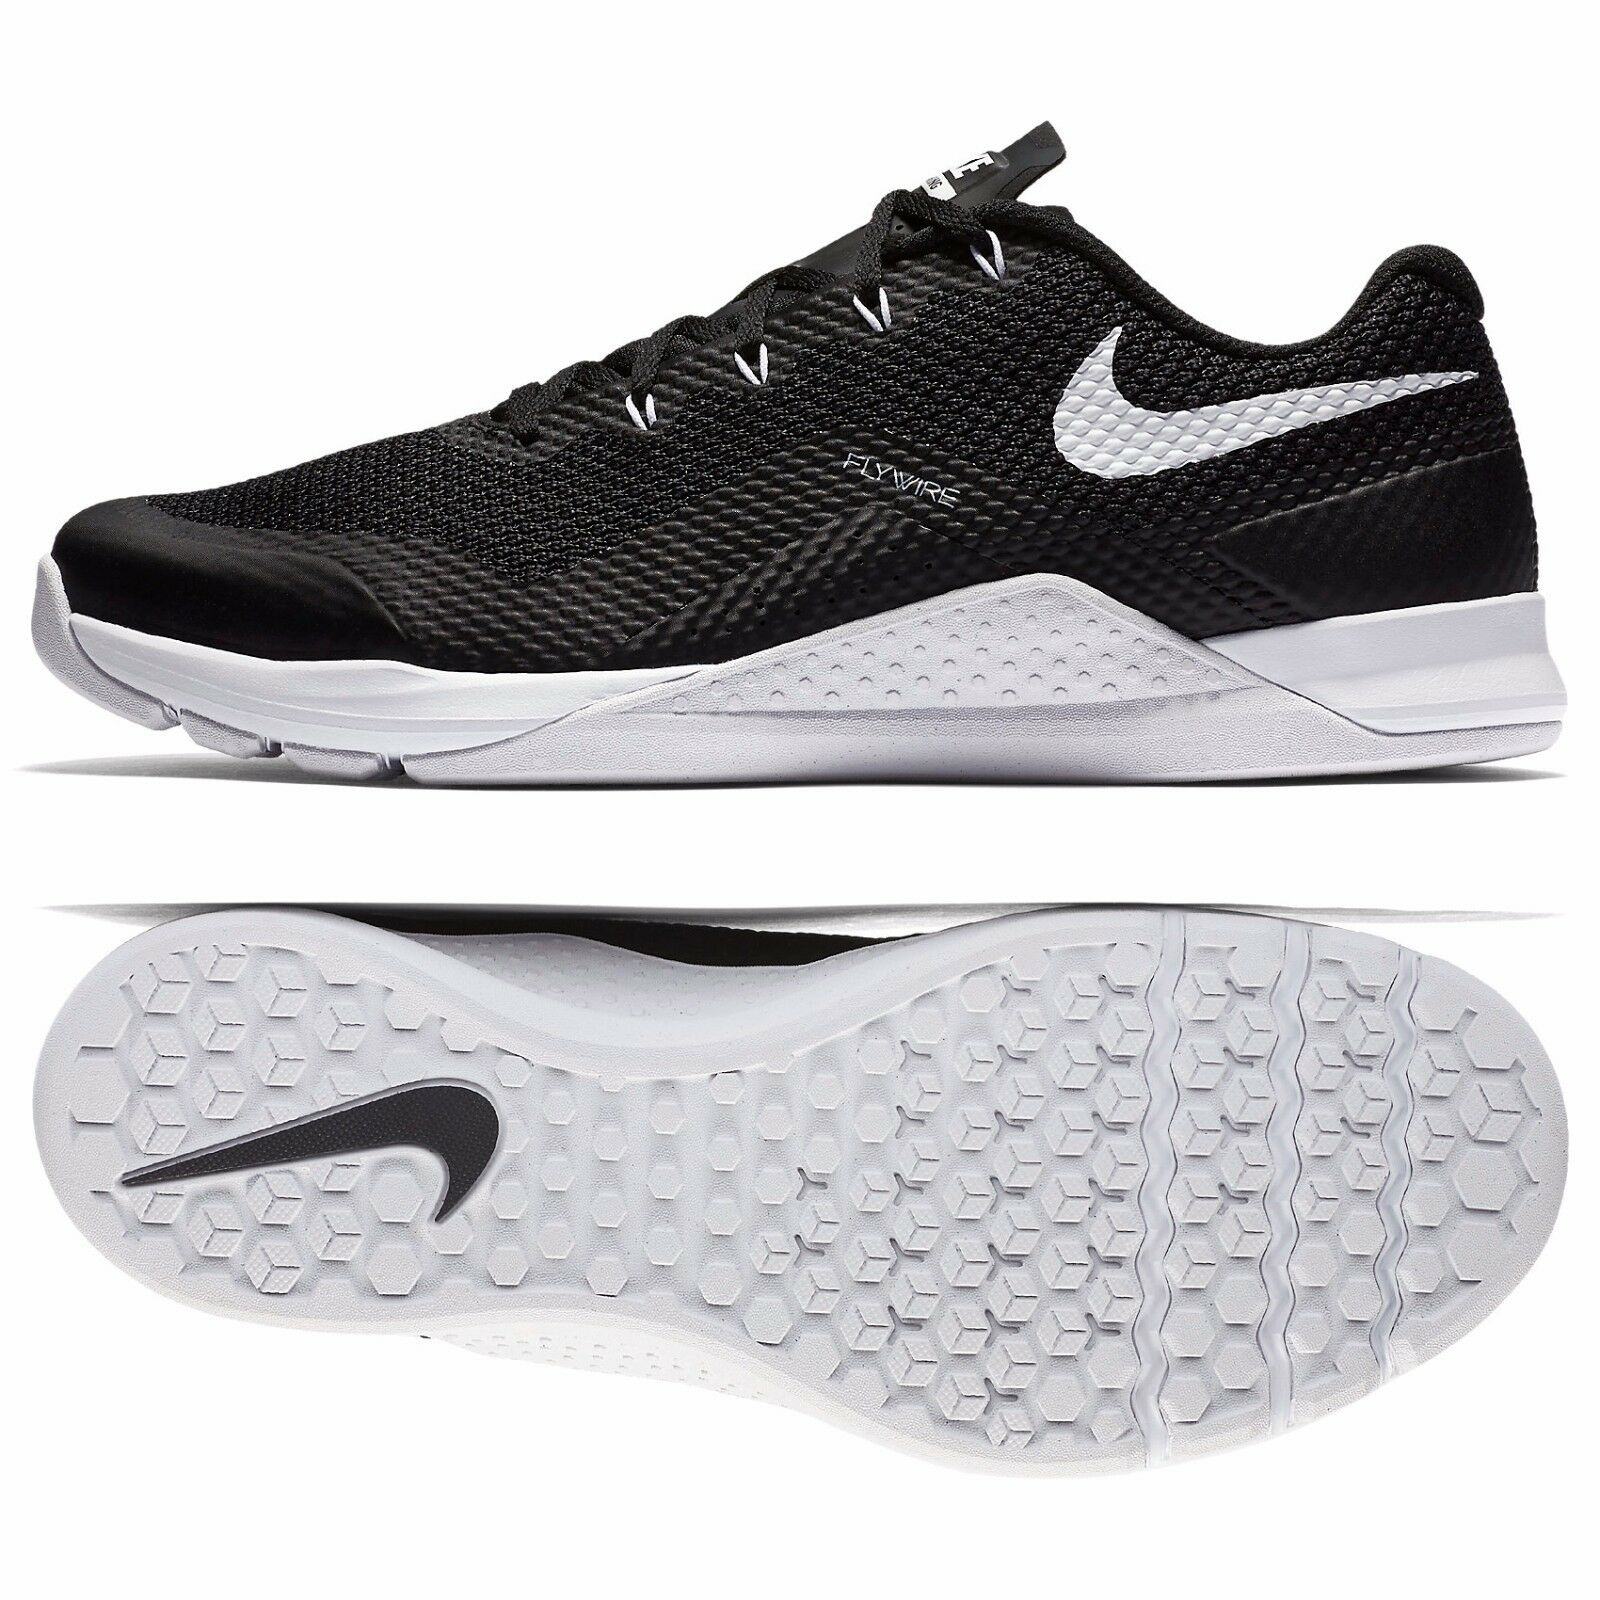 Nike Metcon Repper DSX 898048-002 Black/White Men's Training Shoes Sz 9.5